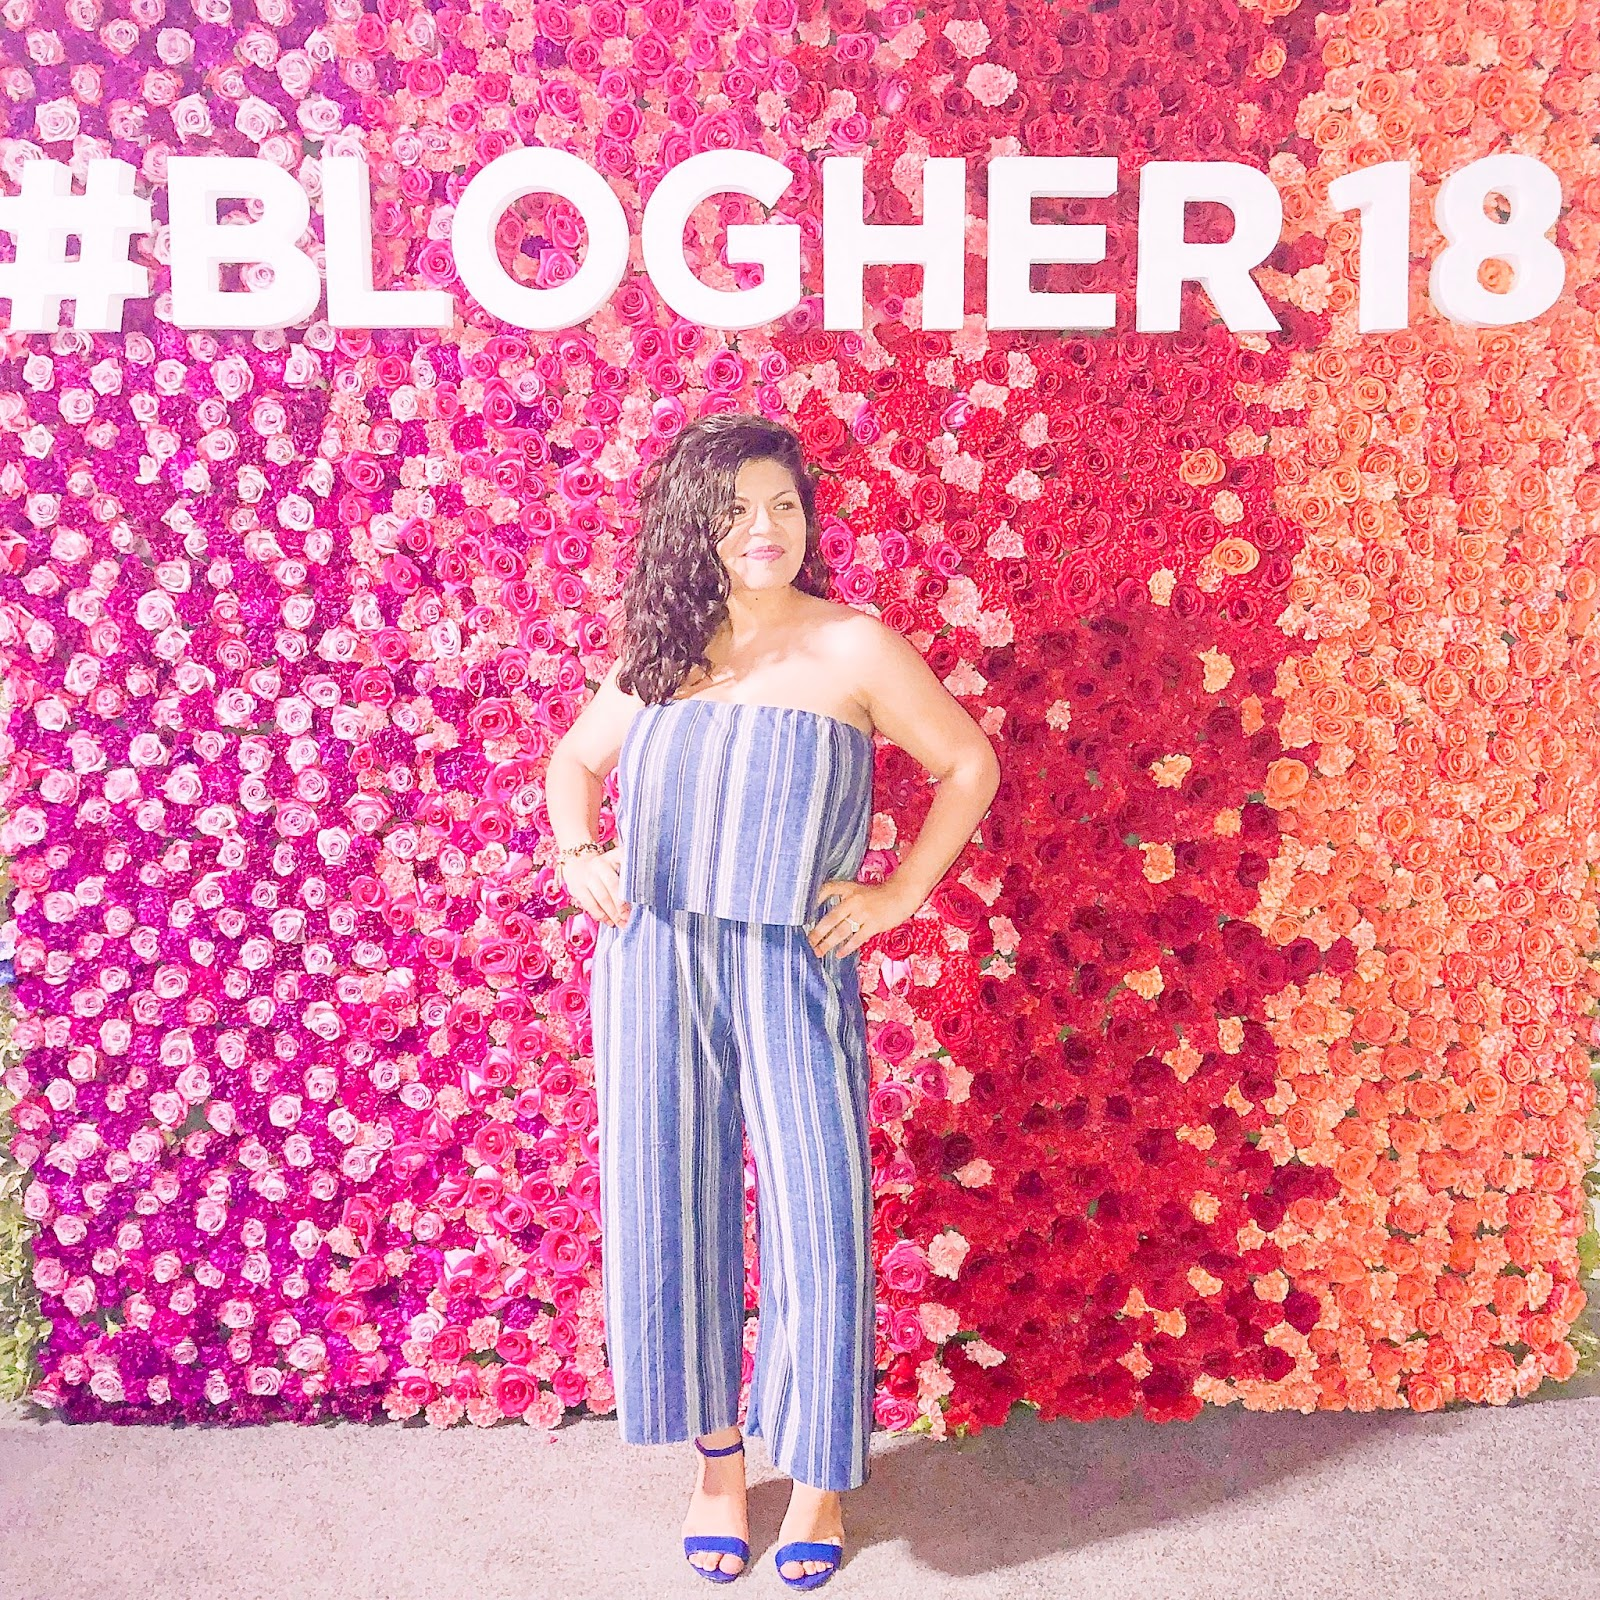 BlogHer Creator Summit 2018--3 Takeaways - Moments of Musing